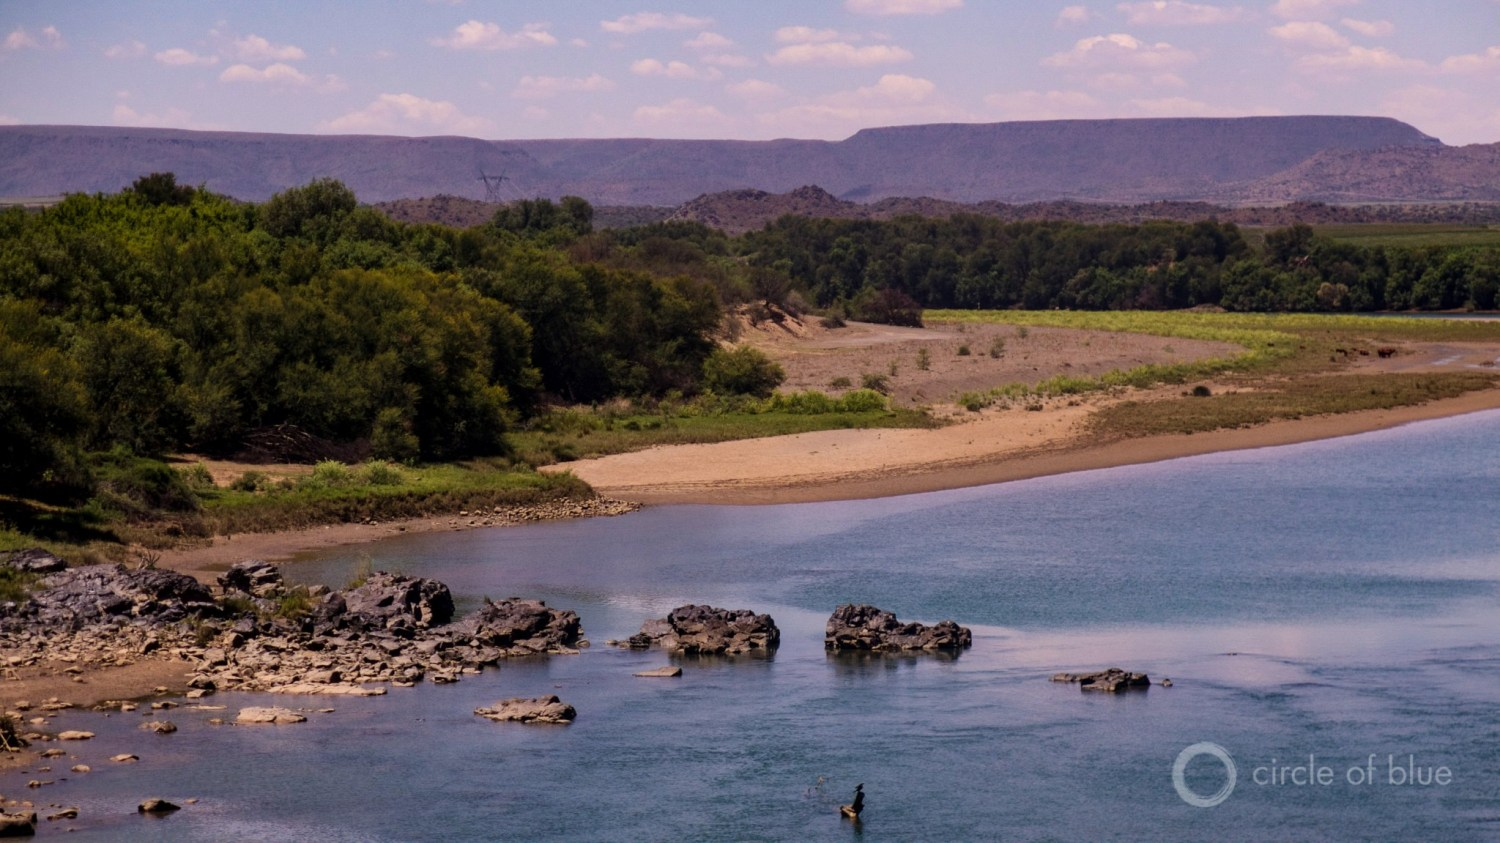 The Orange River, drained by a deep drought, is one of the Karoo's primary sources of fresh water. Much of the river's water is devoted to desert agriculture. Photo © Keith Schneider / Circle of Blue